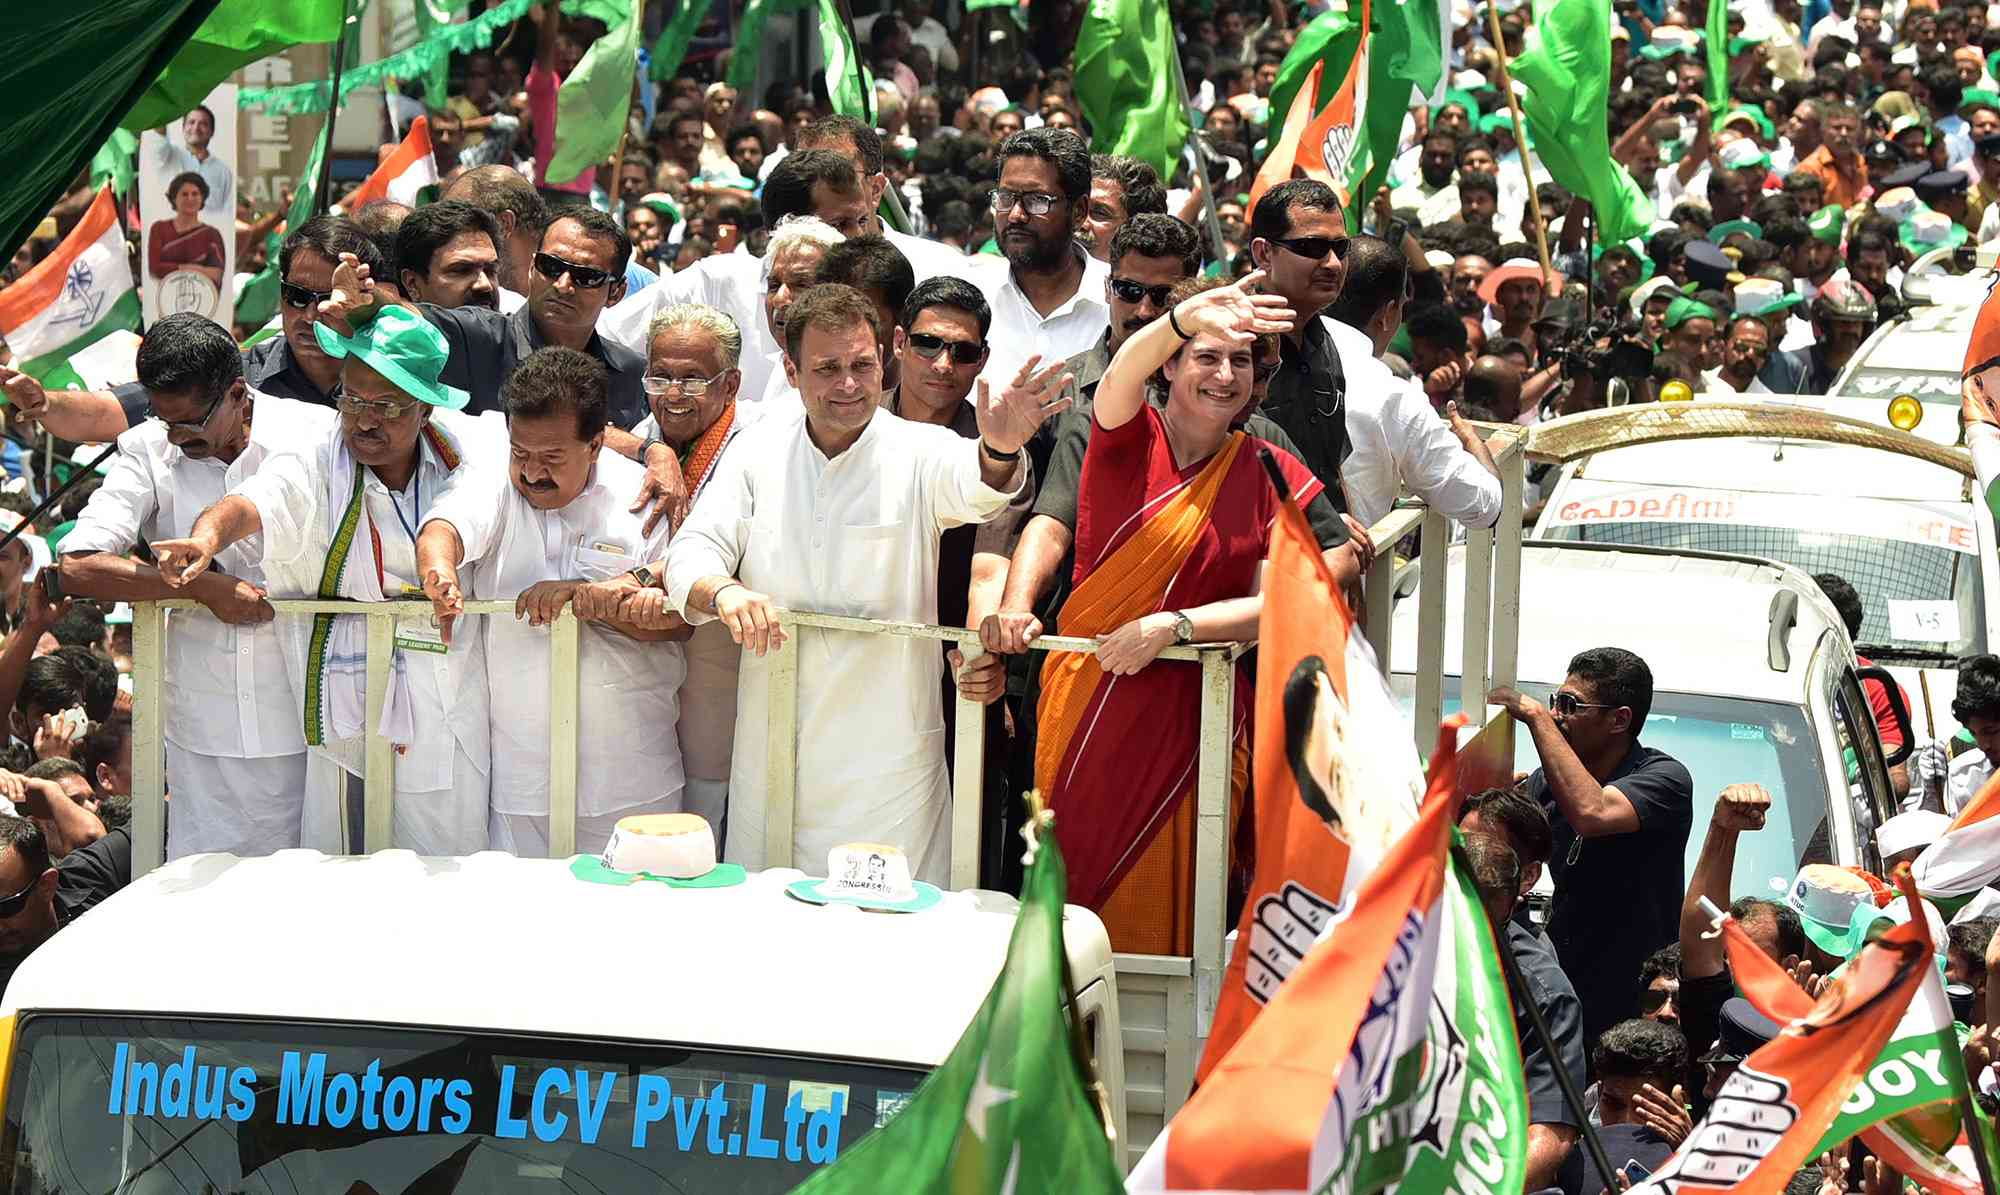 Rahul Gandhi and his sister Priyanka Gandhi during the road show in Wayanad on April 4. Photo credit: Satheesh